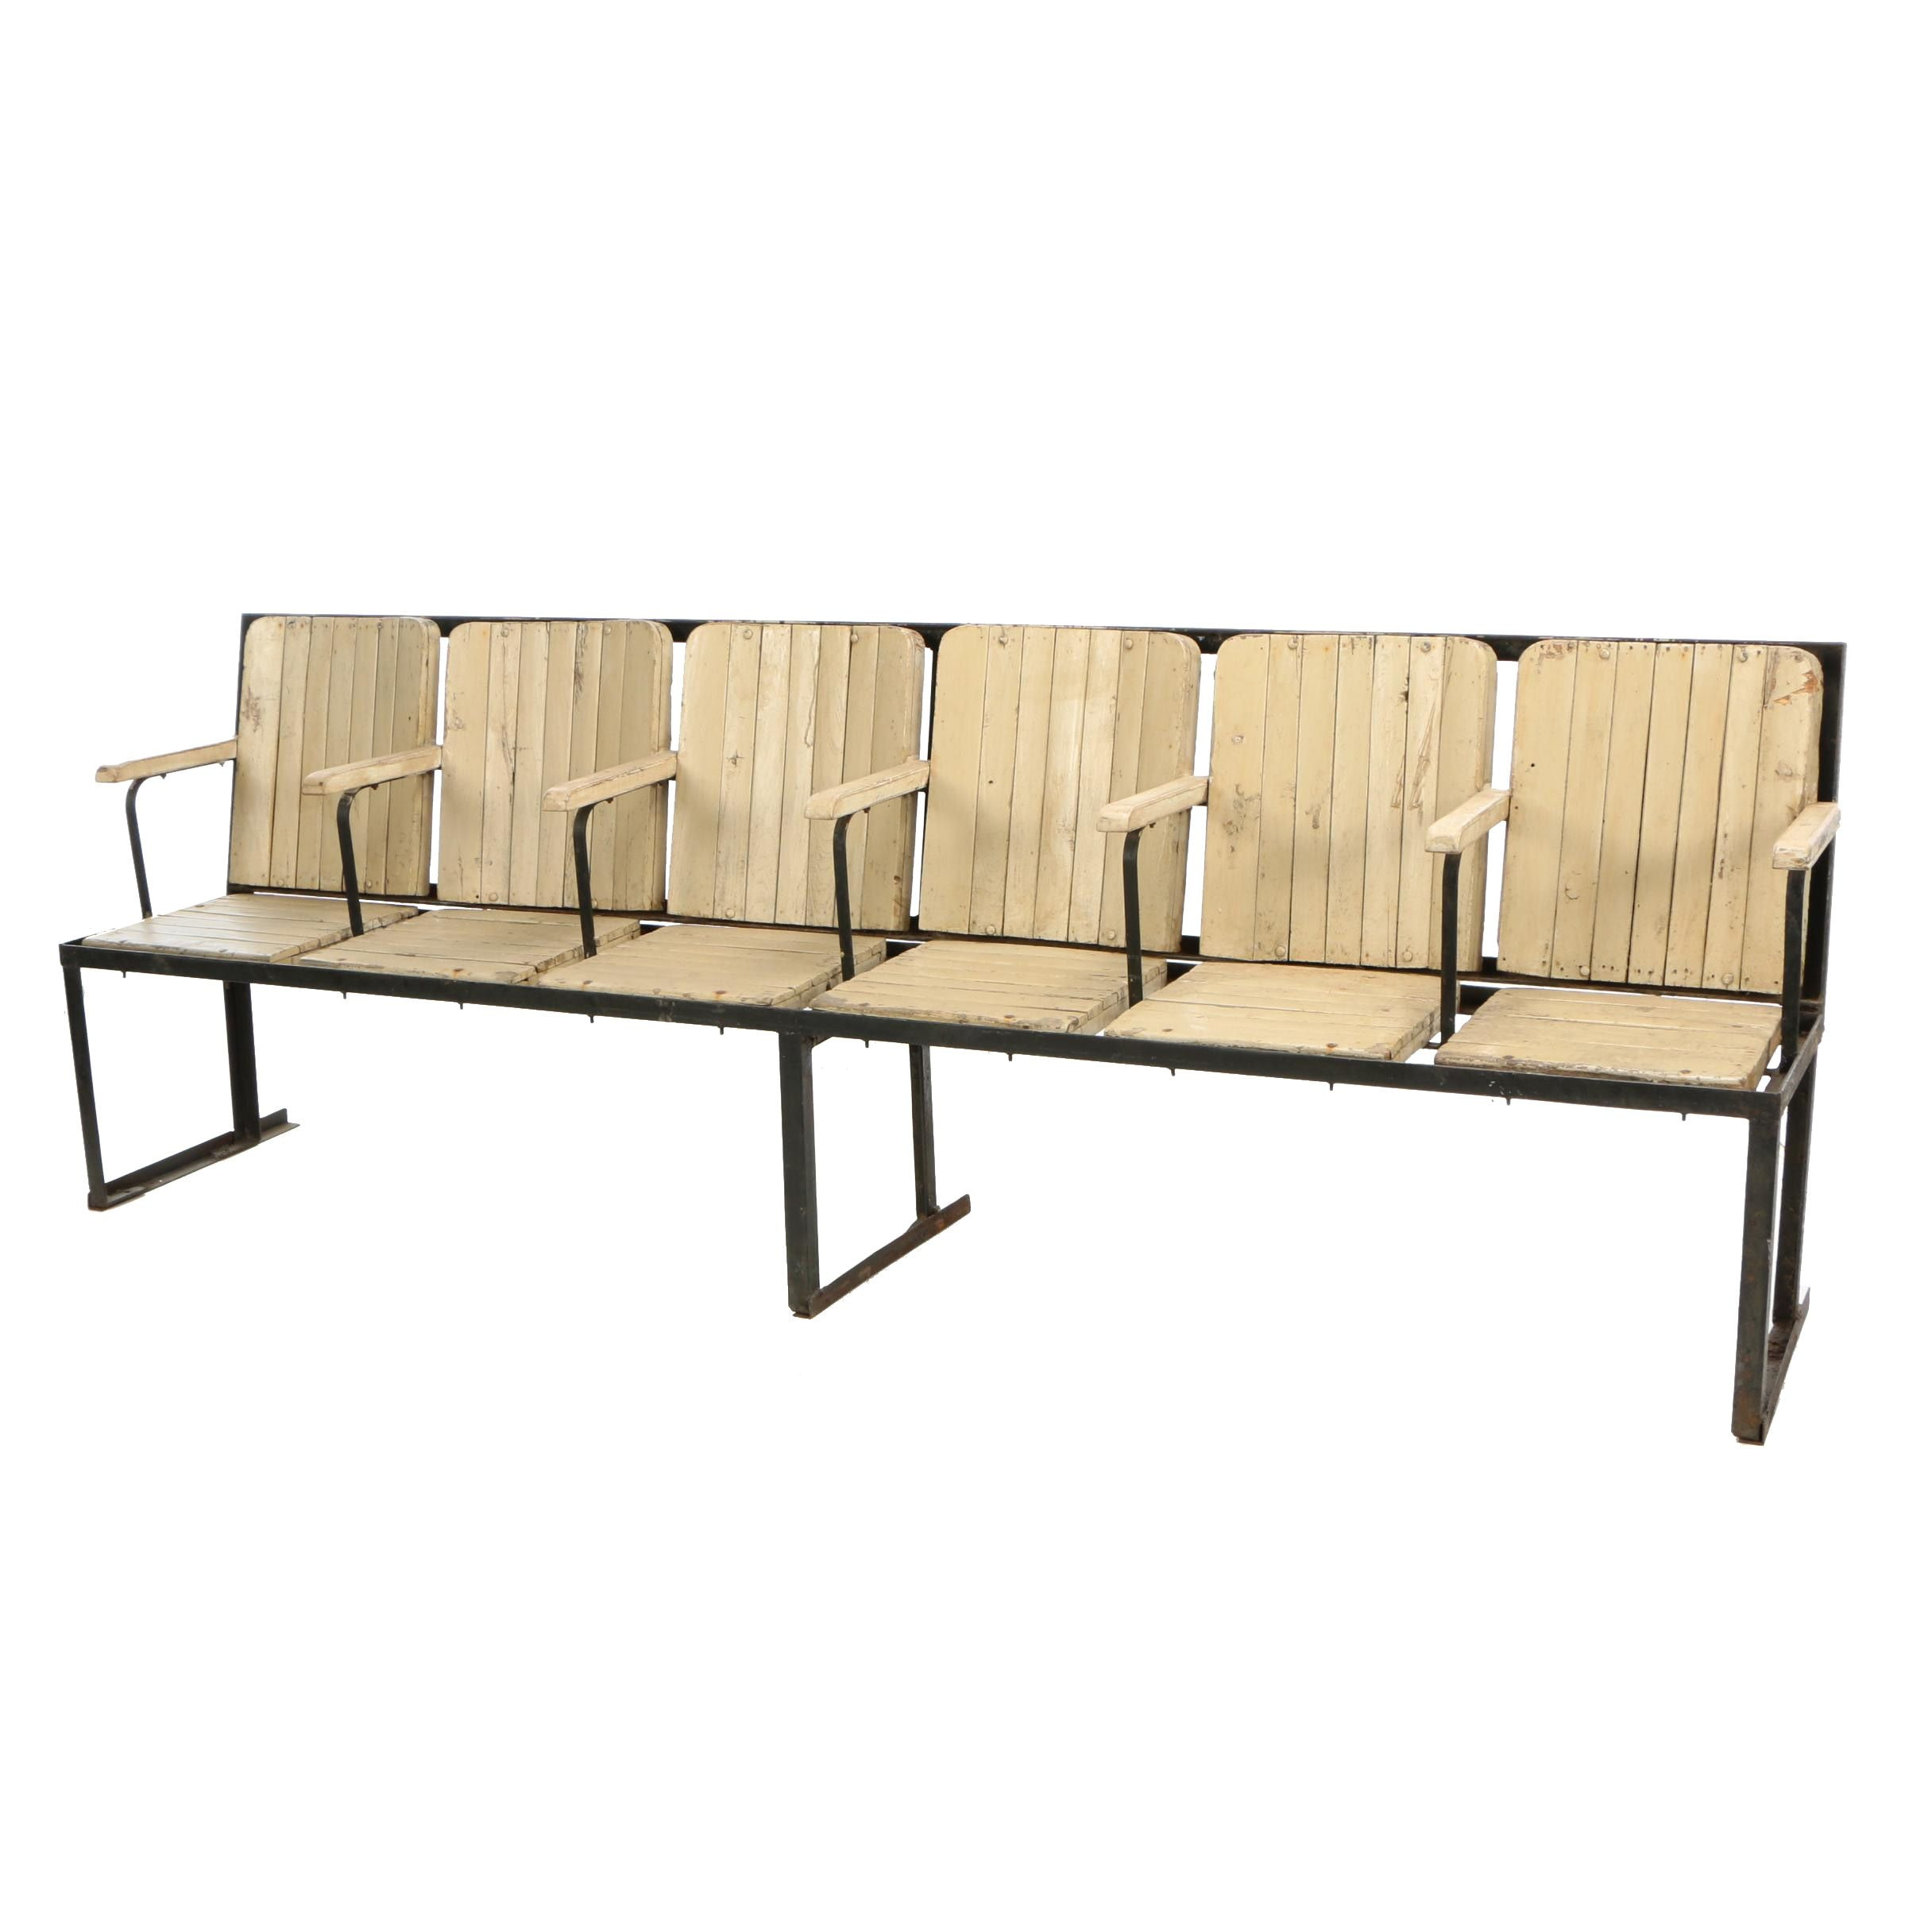 Indian Painted Hardwood Six-Seat Theater Bench, Late 20th Century